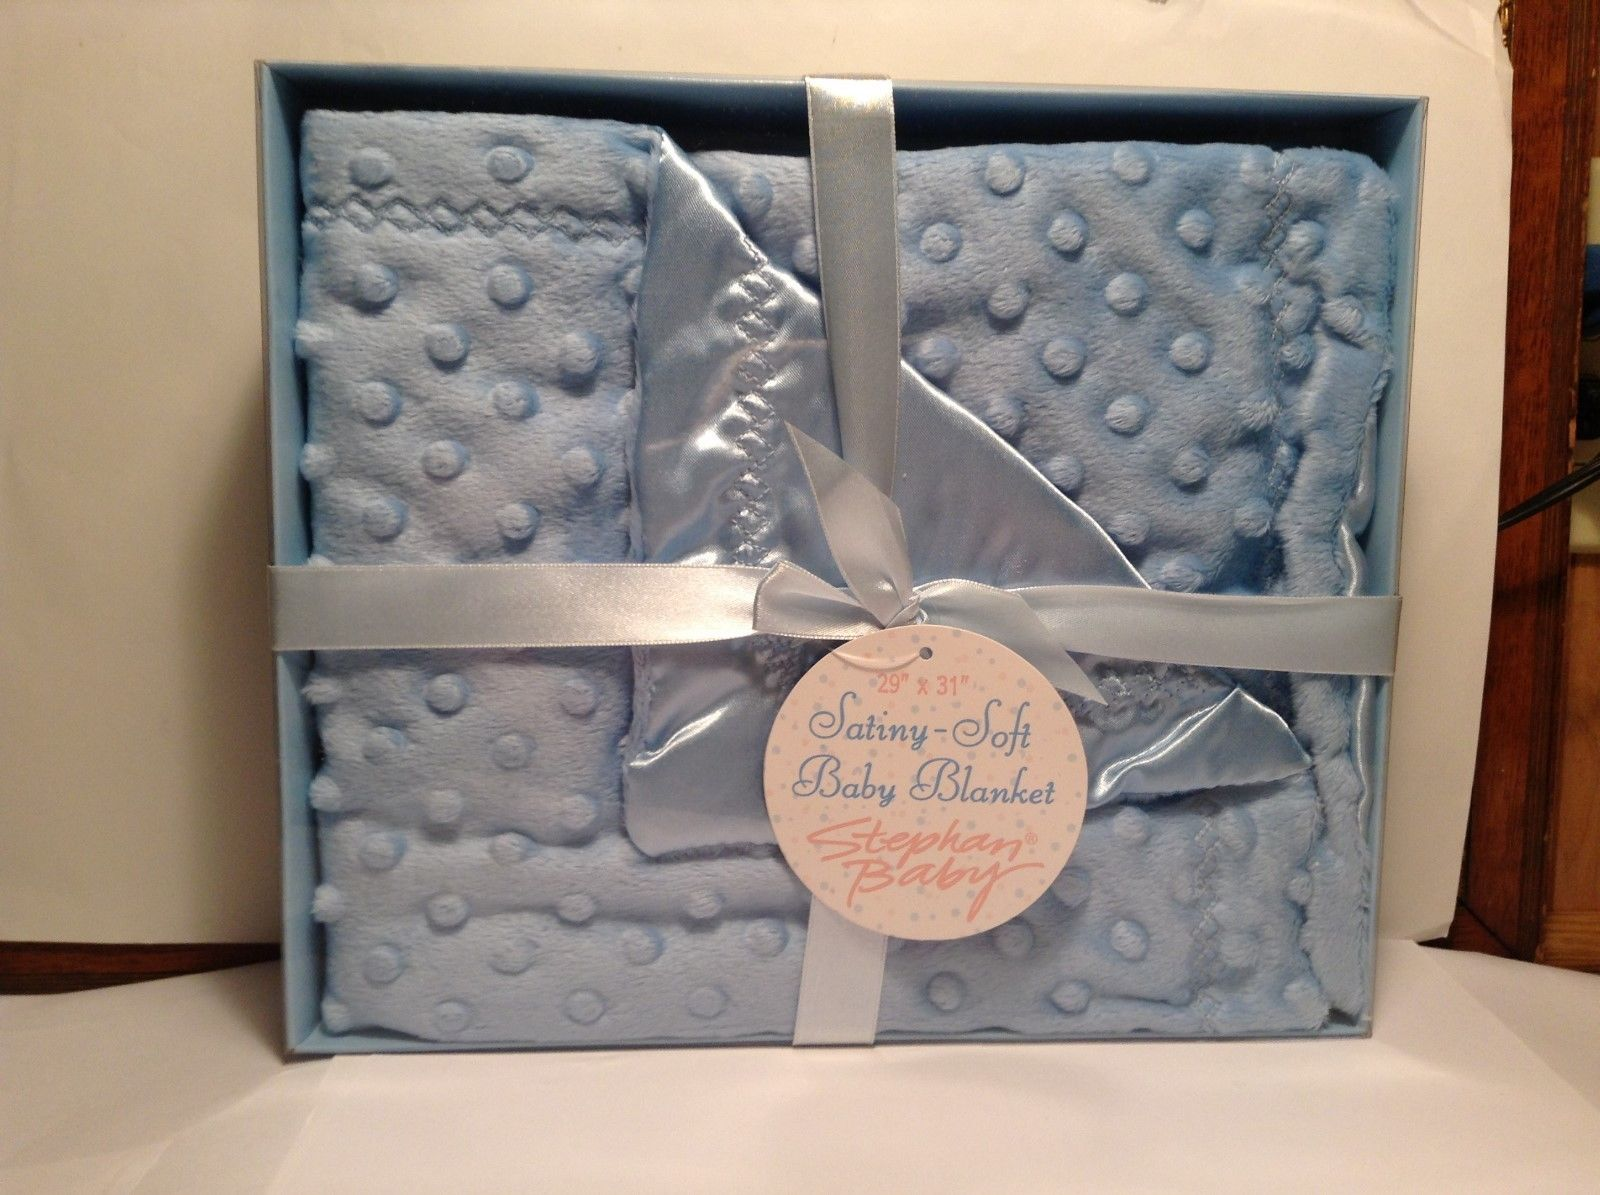 NEW Stephan Baby Satiny-Soft Baby Blue Blanket